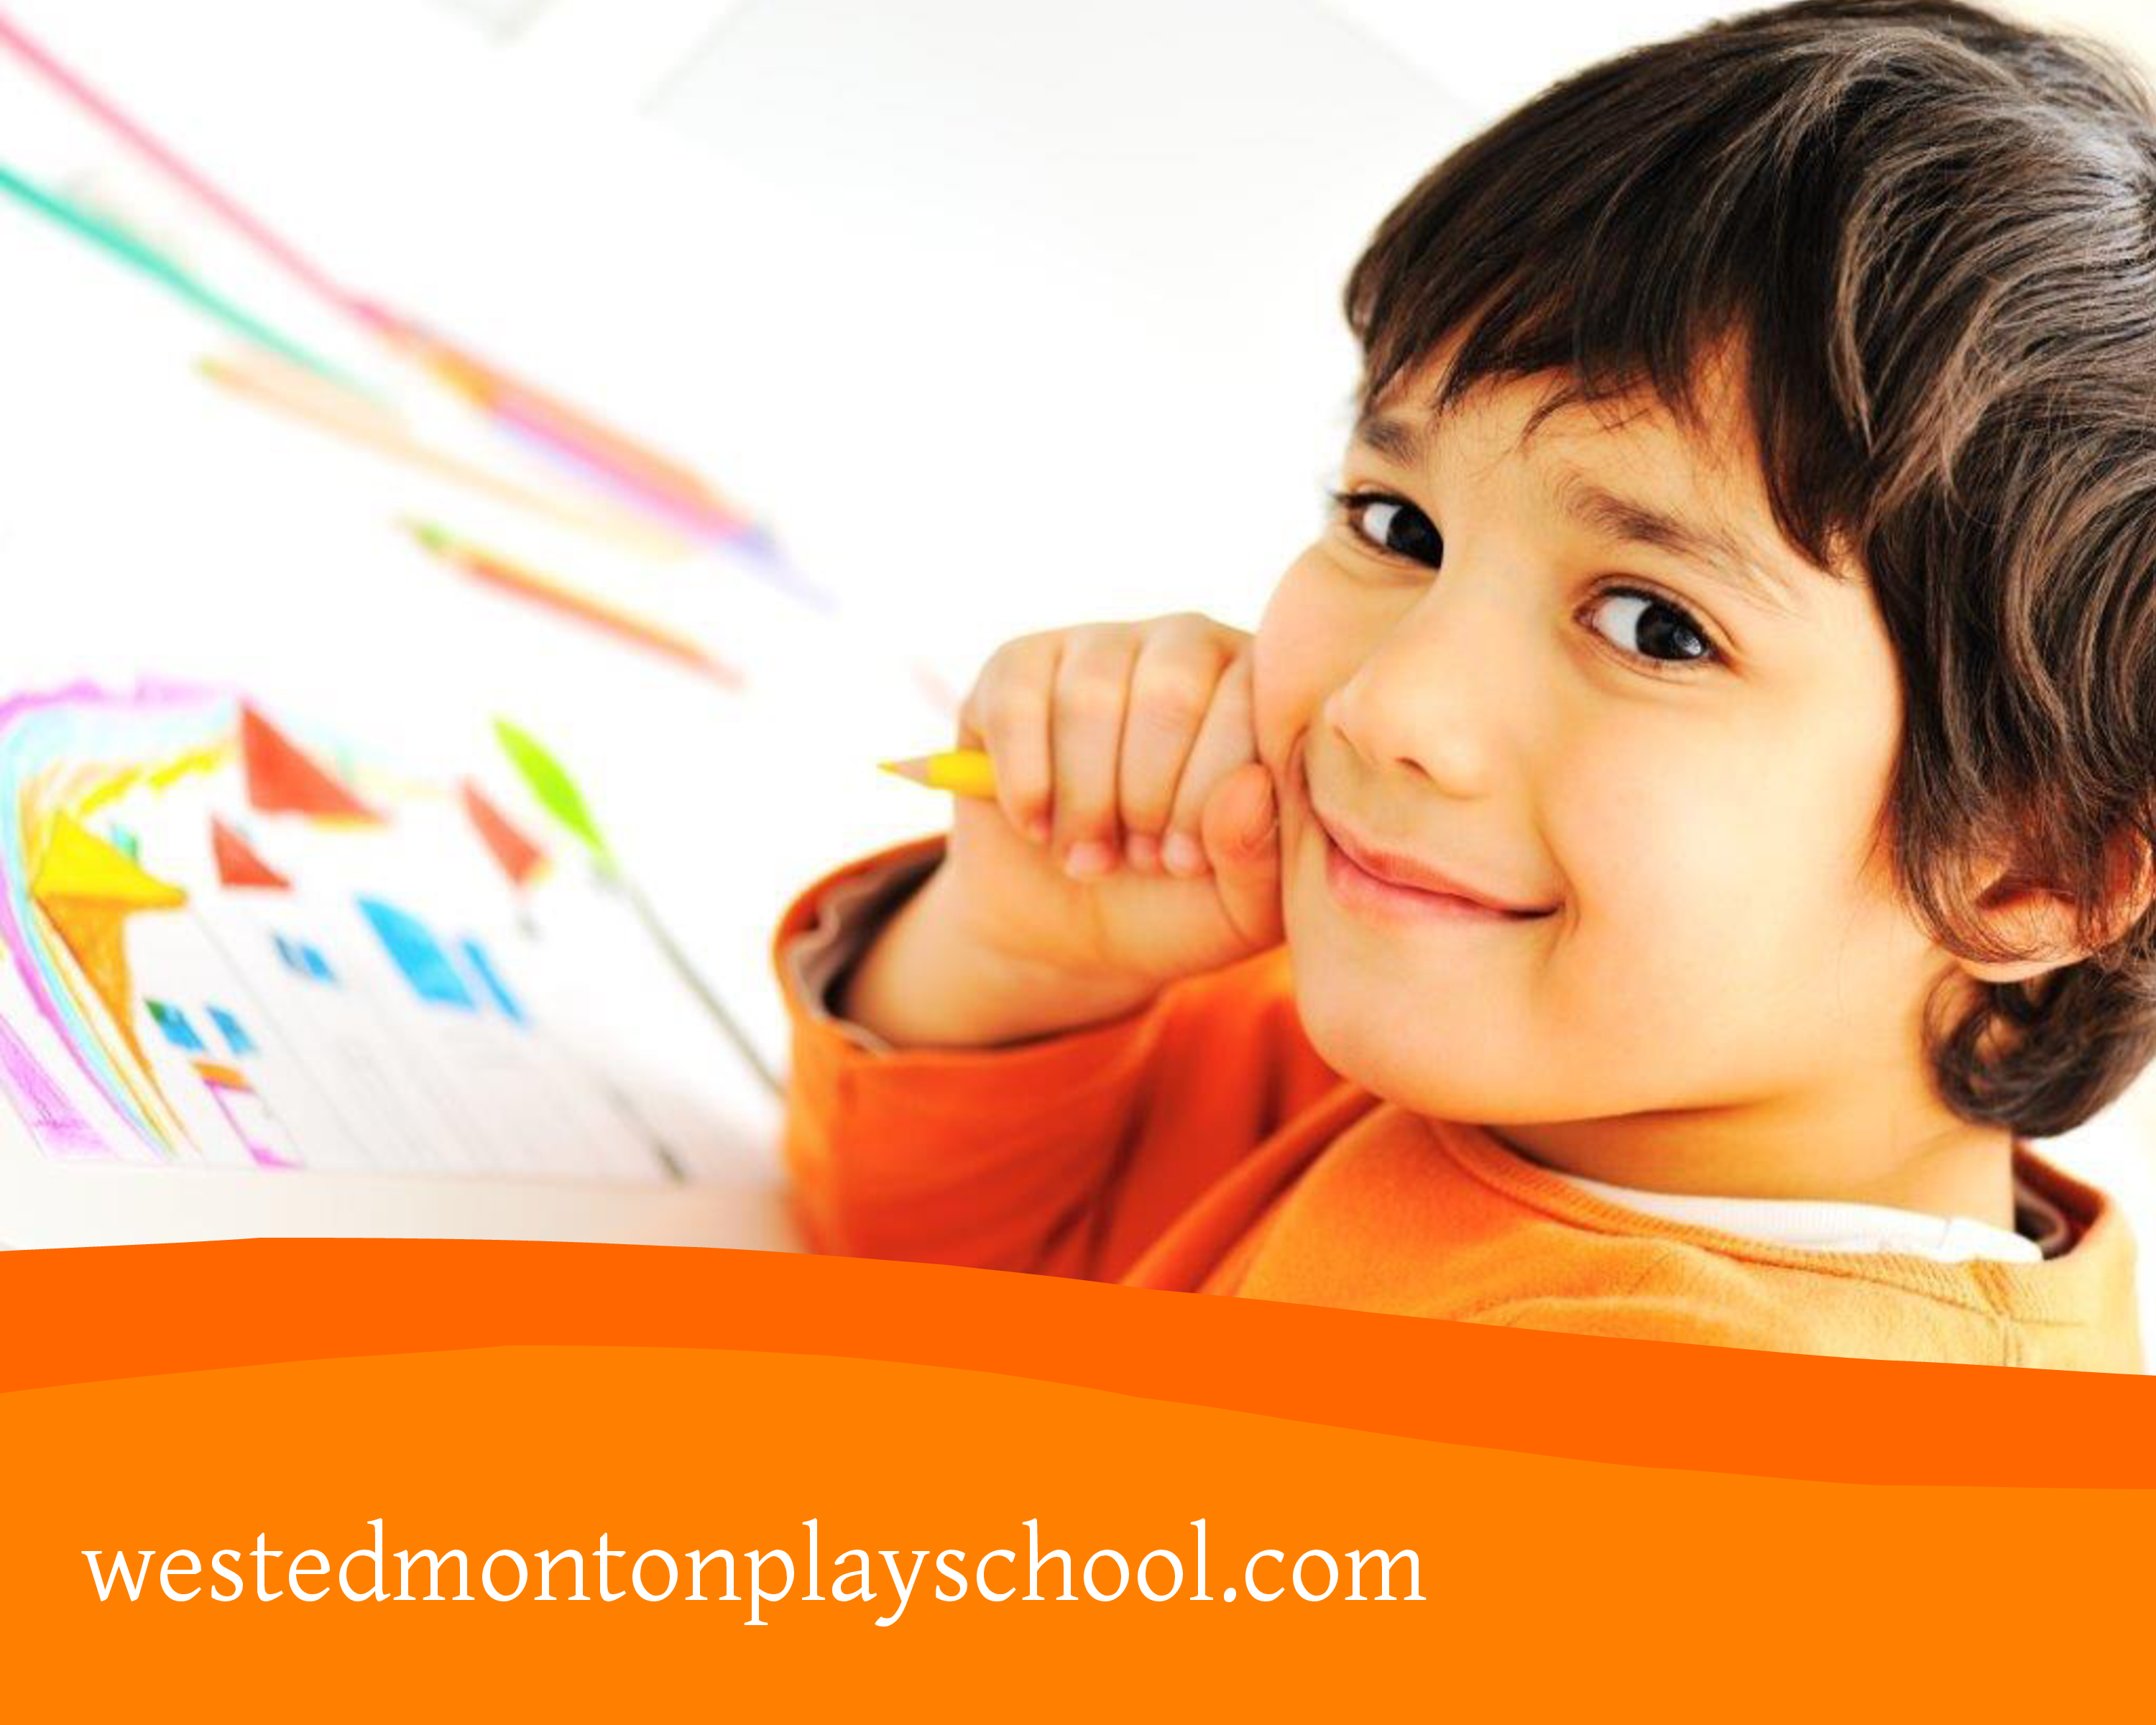 Westedmontonplayschool - Kids Face PNG HD